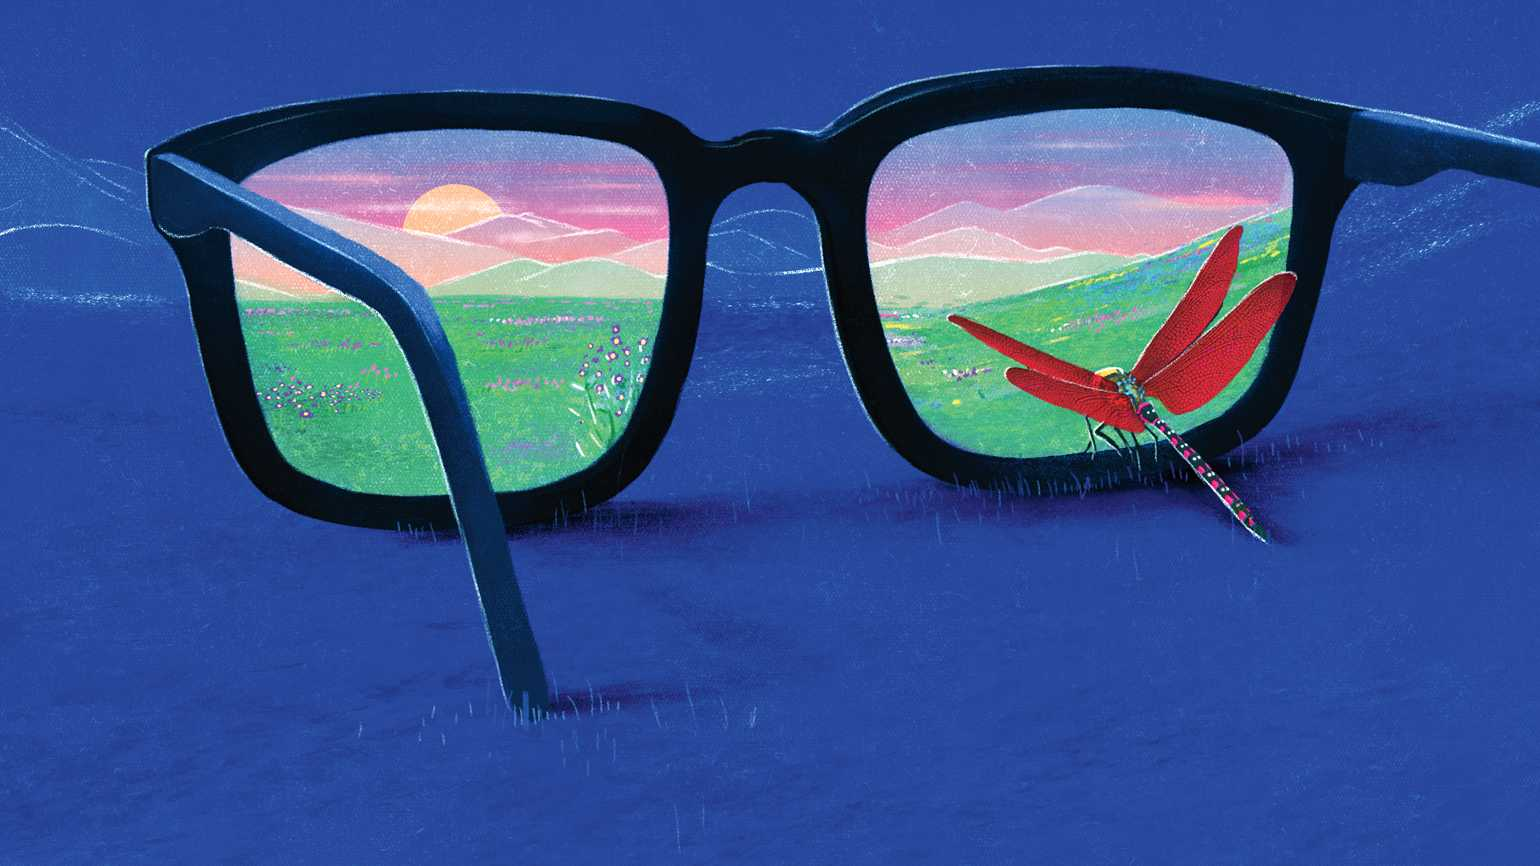 Glasses with a scenic view in the lenses; Illustration by Daniel Lievano